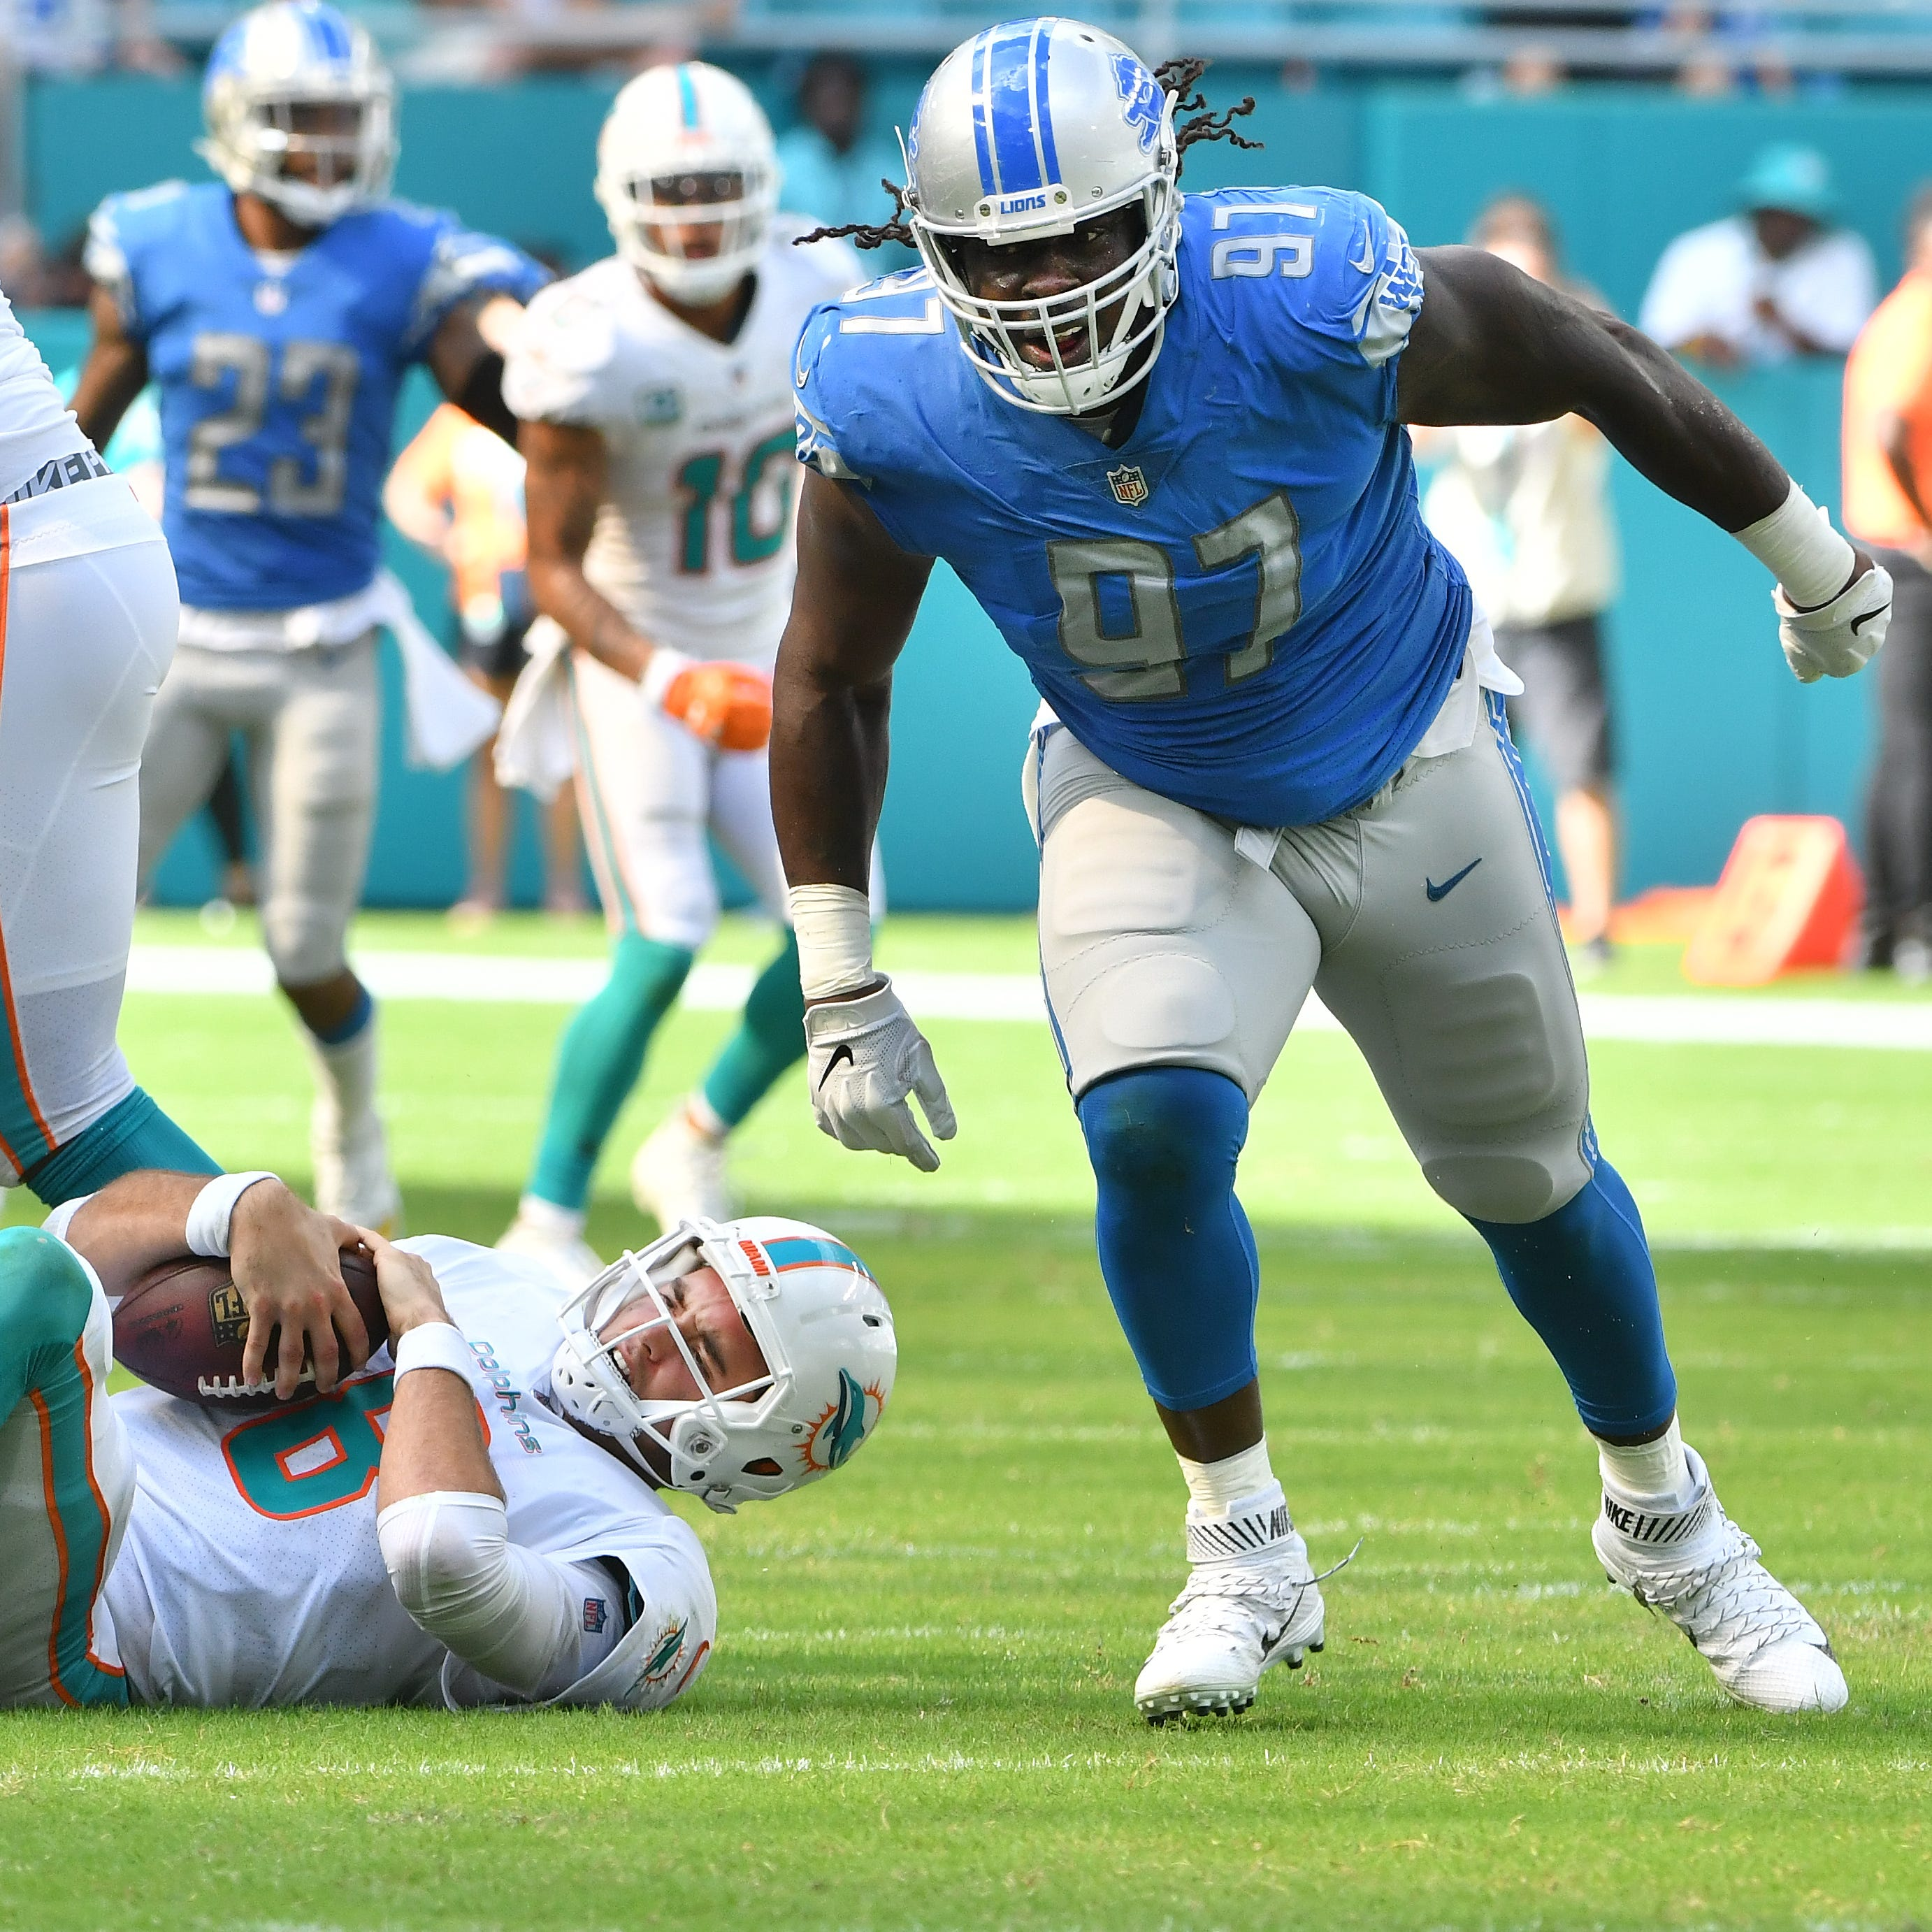 Lions not satisfied with turnaround: 'We know we can play better'